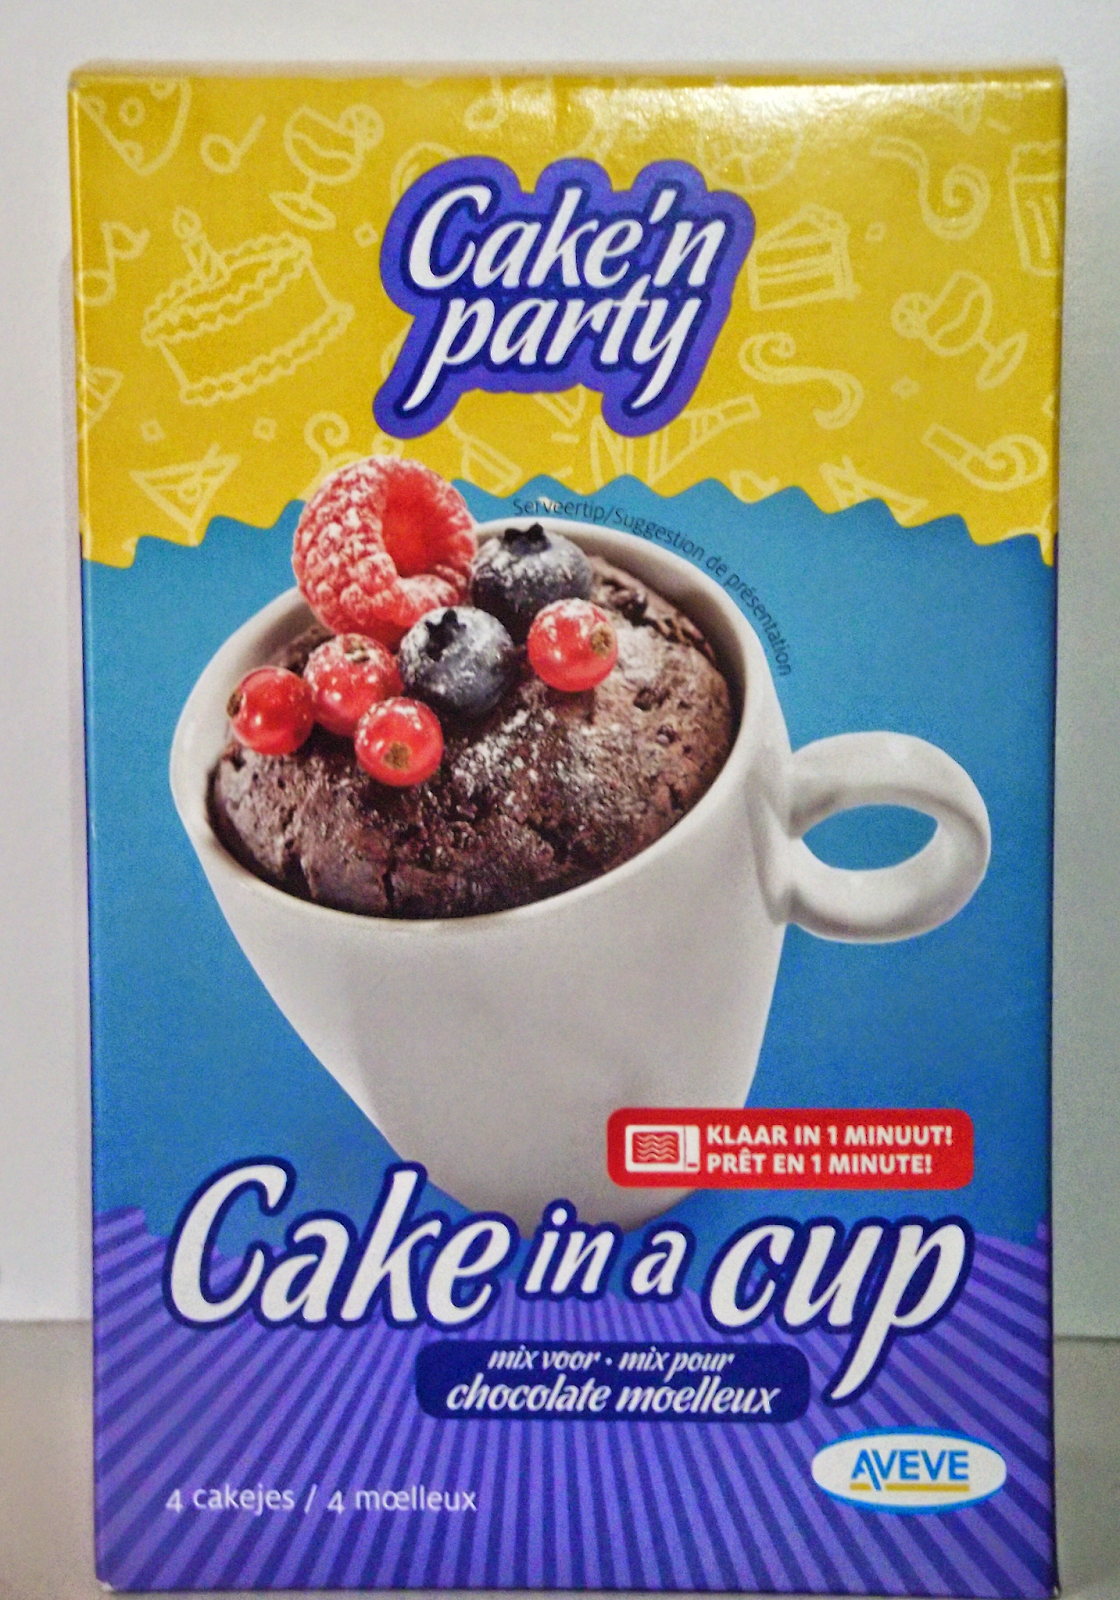 Review: Cake 'n Party - Cake in a cup